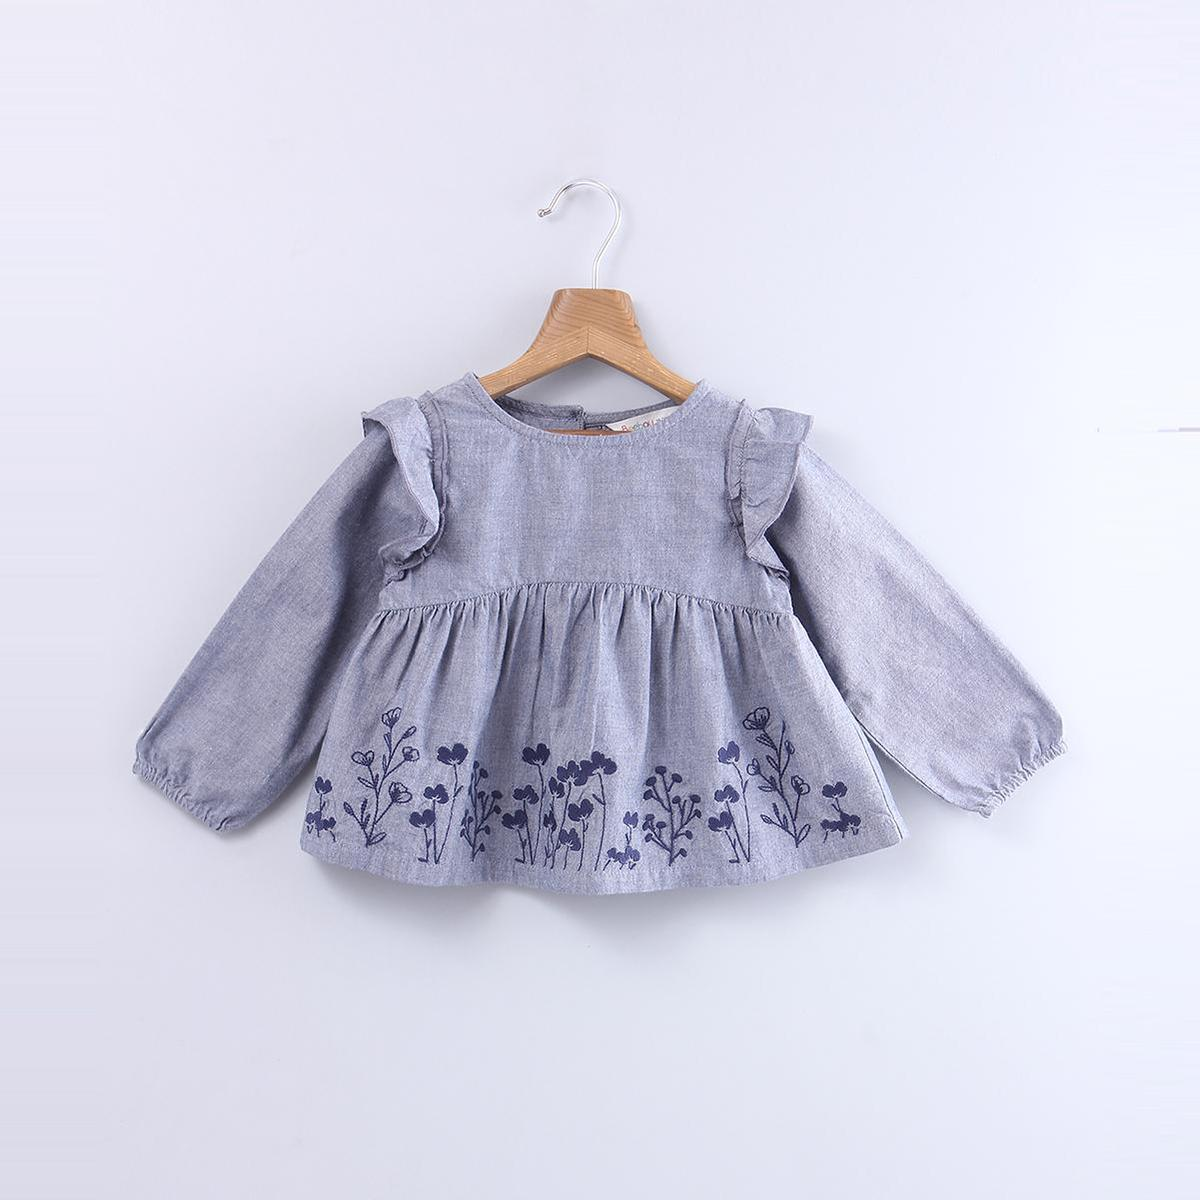 Beebay - Grey Colored Floral Embroidered Chambray Cotton Top For Infants Girls